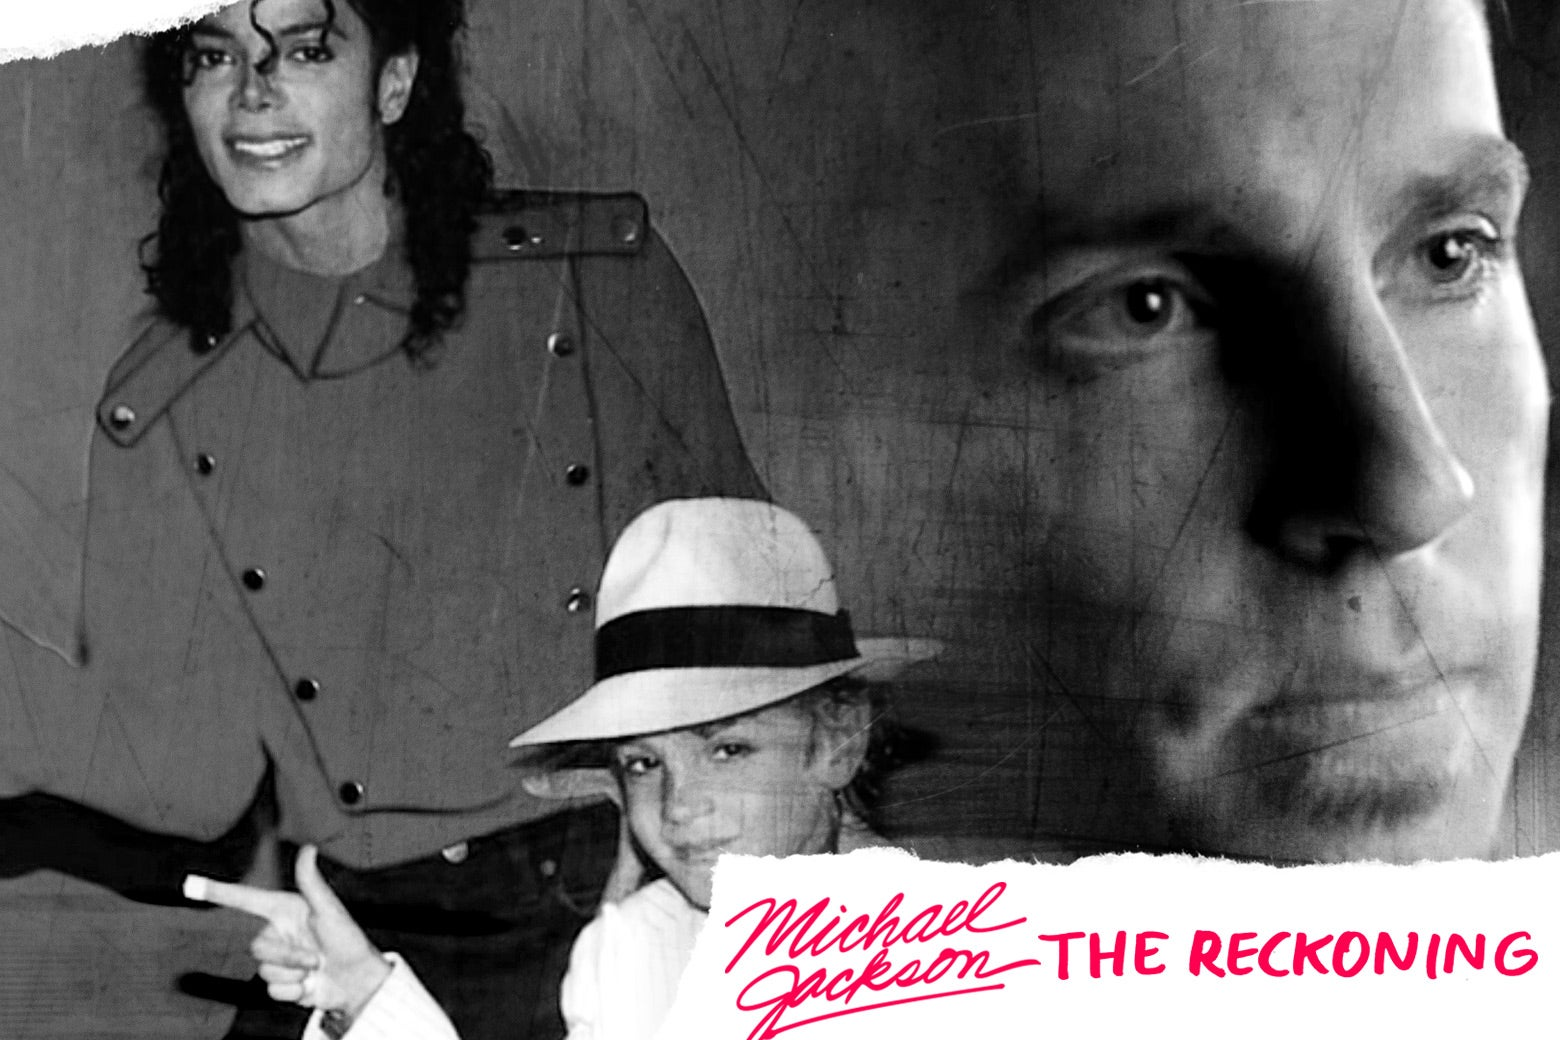 Collage of Wade Robson as a child posing with Michael Jackson and Wade Robson as an adult.